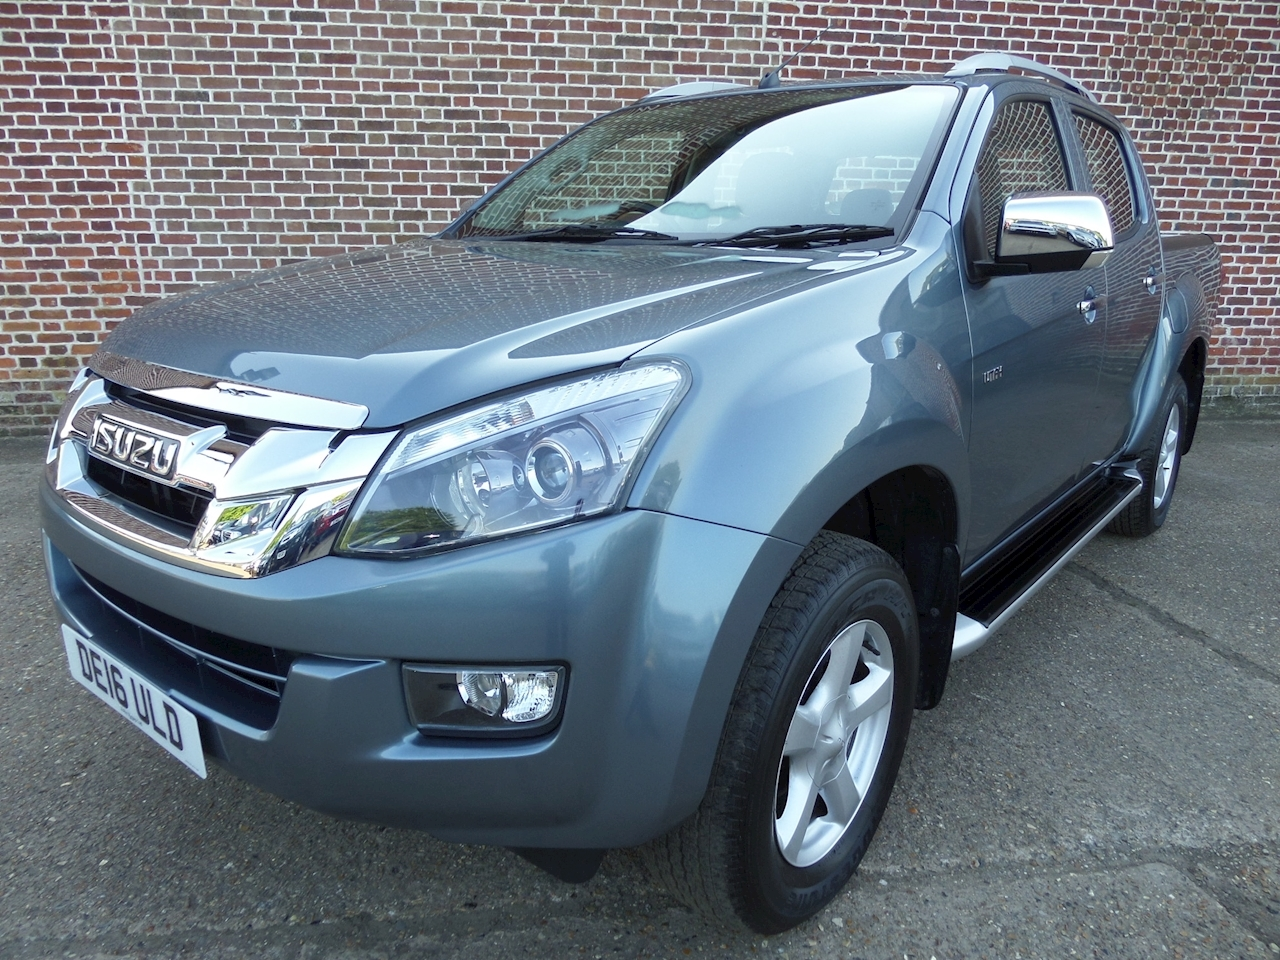 Isuzu D-Max Td Utah Dcb 2.5 4dr Pick-Up Manual Diesel